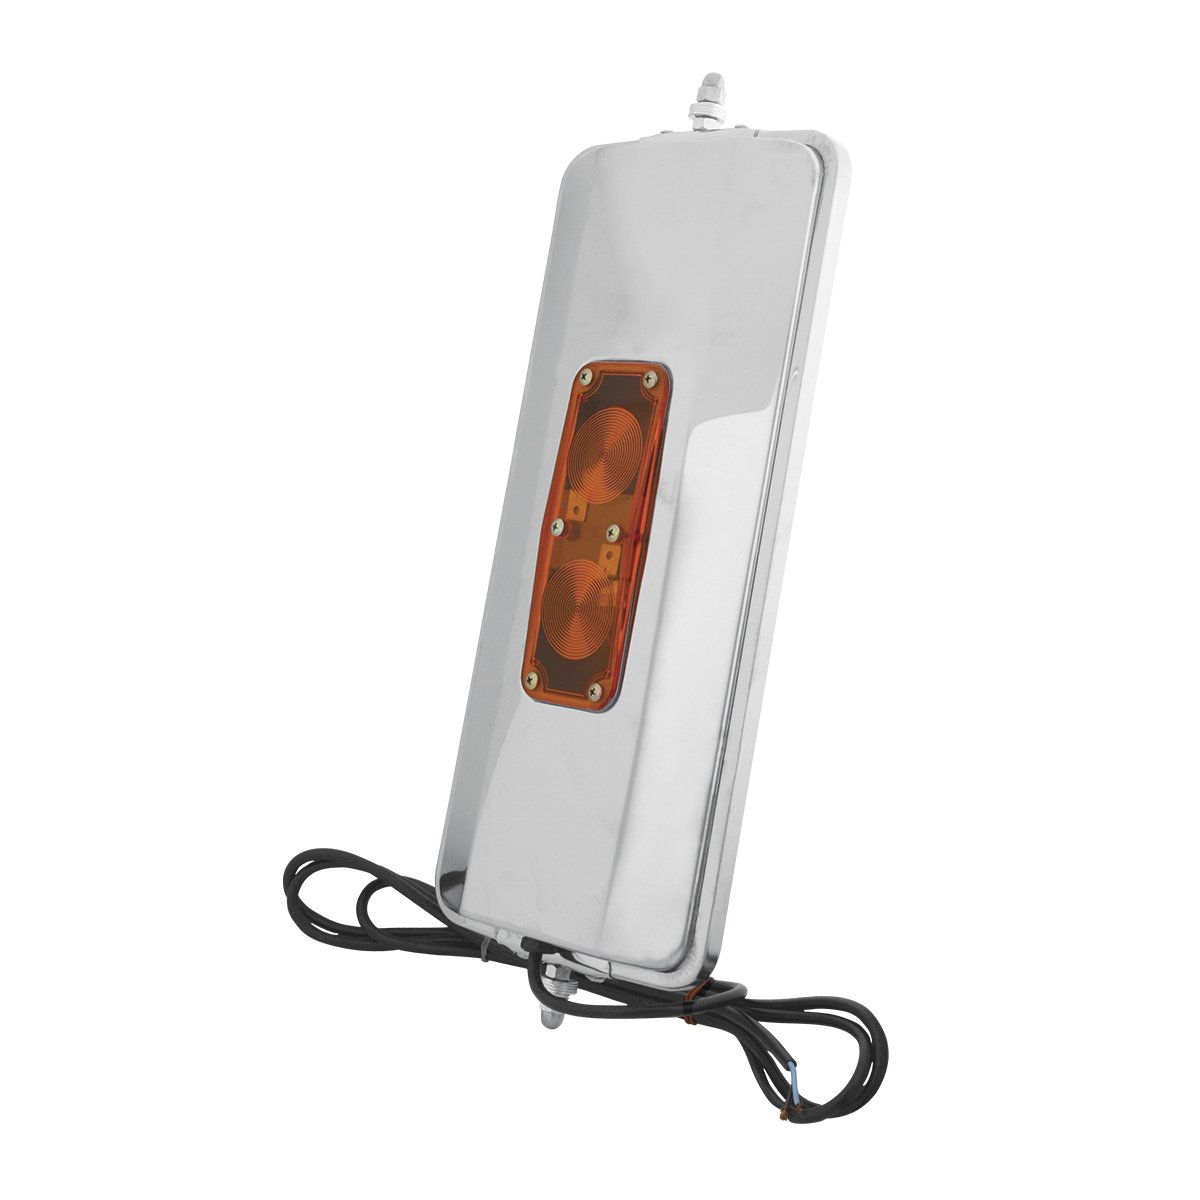 Buses GG Grand General 0 Grand General 33311 Stainless Steel Heated West Coast Mirror with Lighting feature for Trucks Utility Vehicles and More